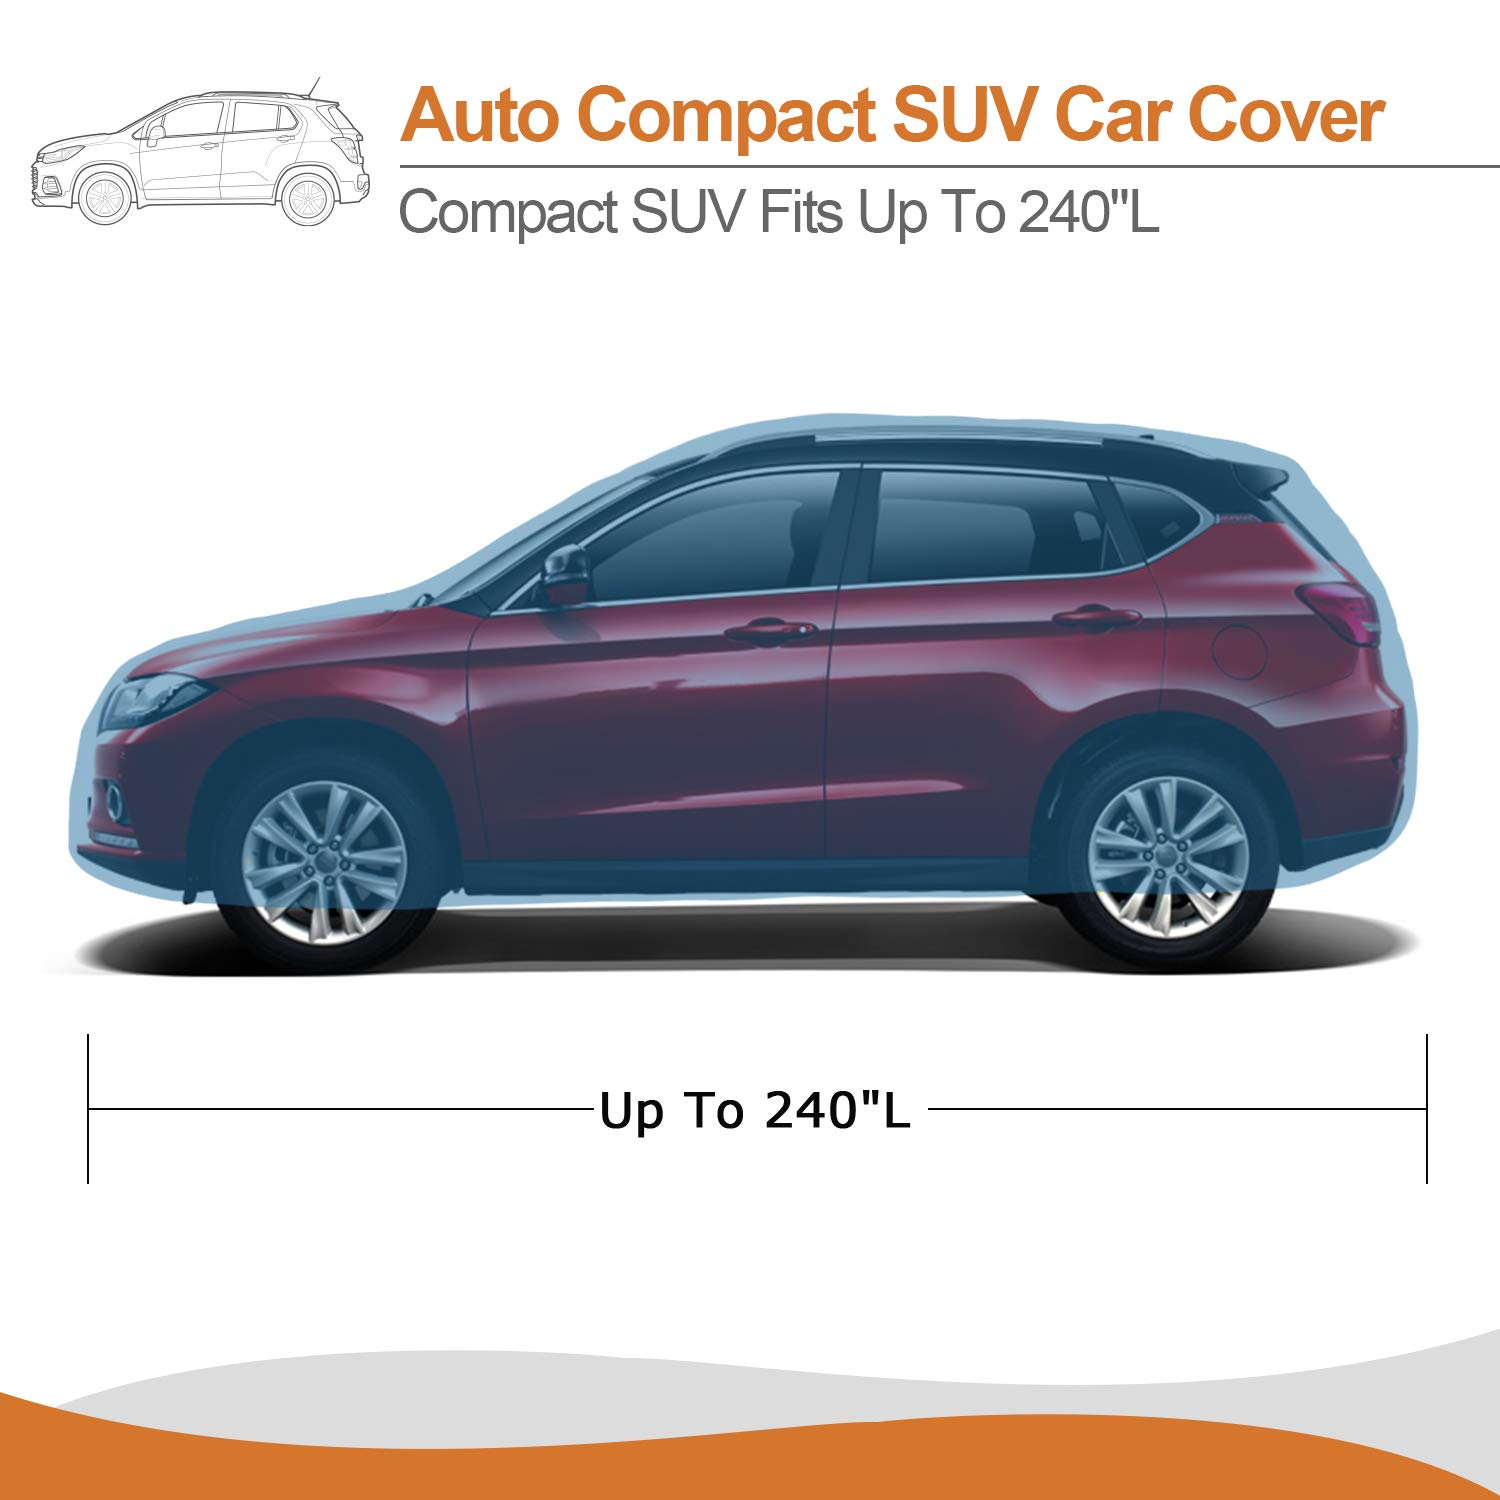 Windproof Car Protection for Indoor Outdoor XCAR 3 Layer Silver Sunshade UV Car Cover 185 Length with Zipper